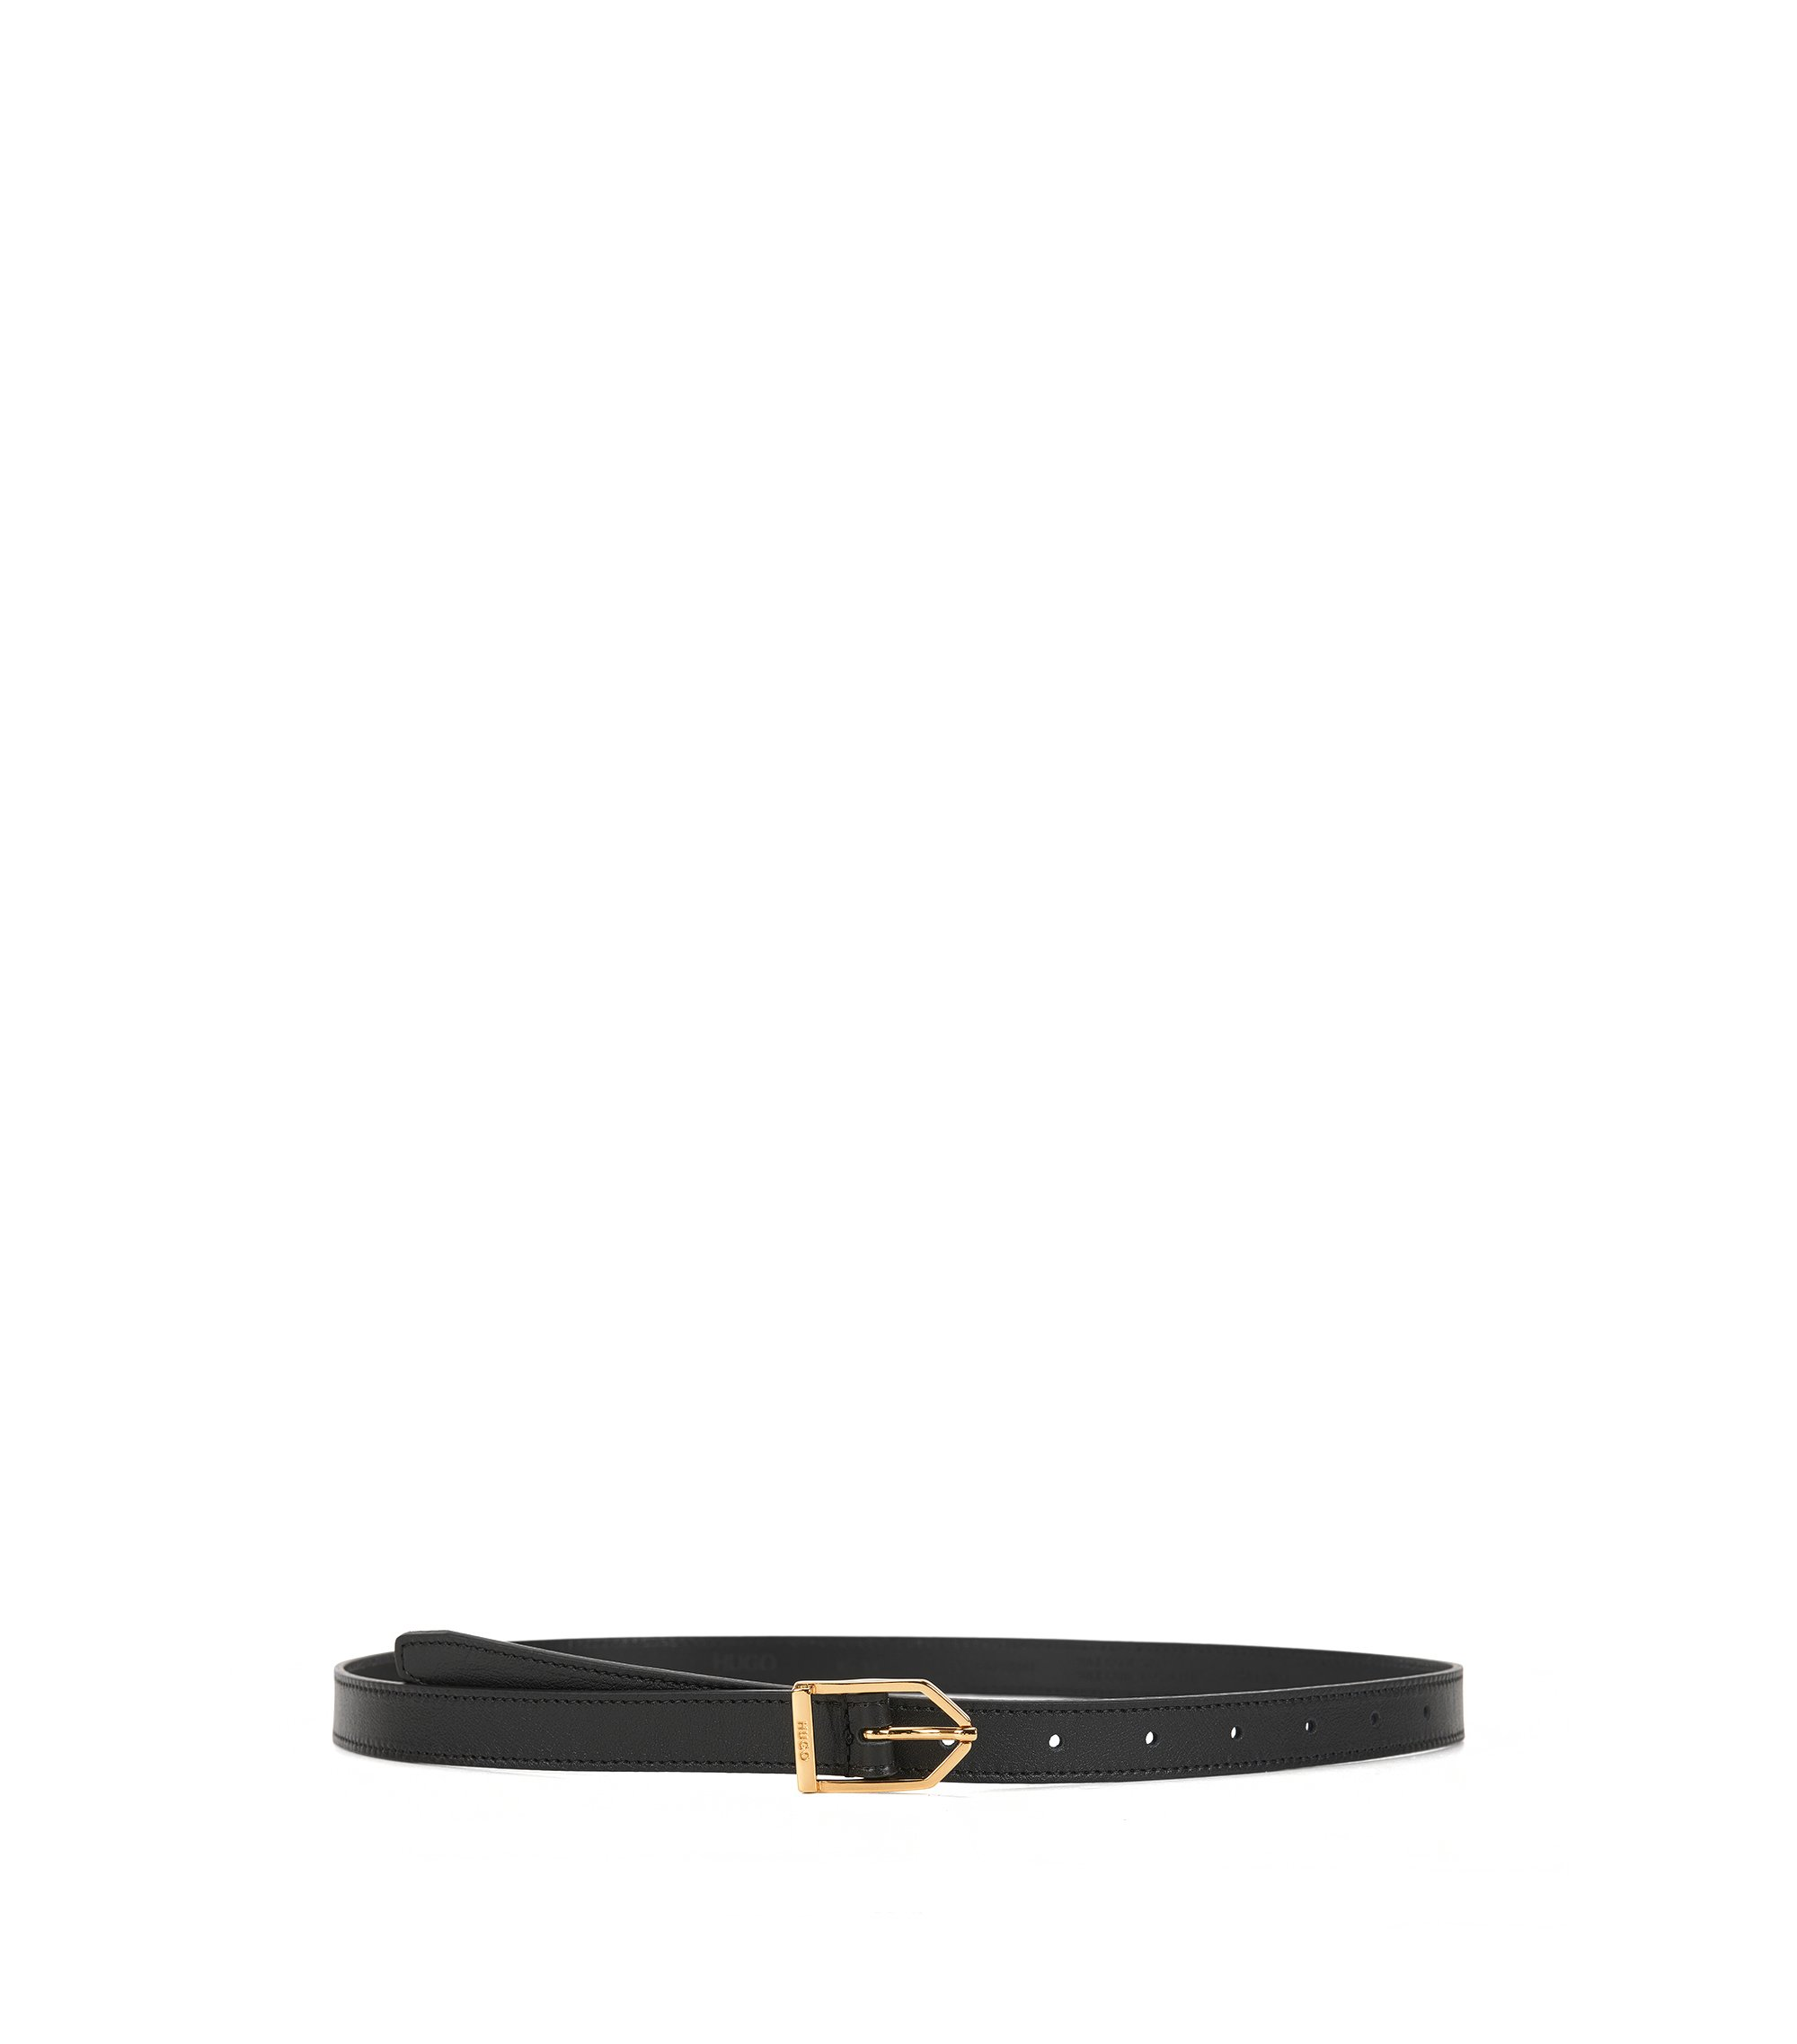 Slim leather belt with modern buckle, Black